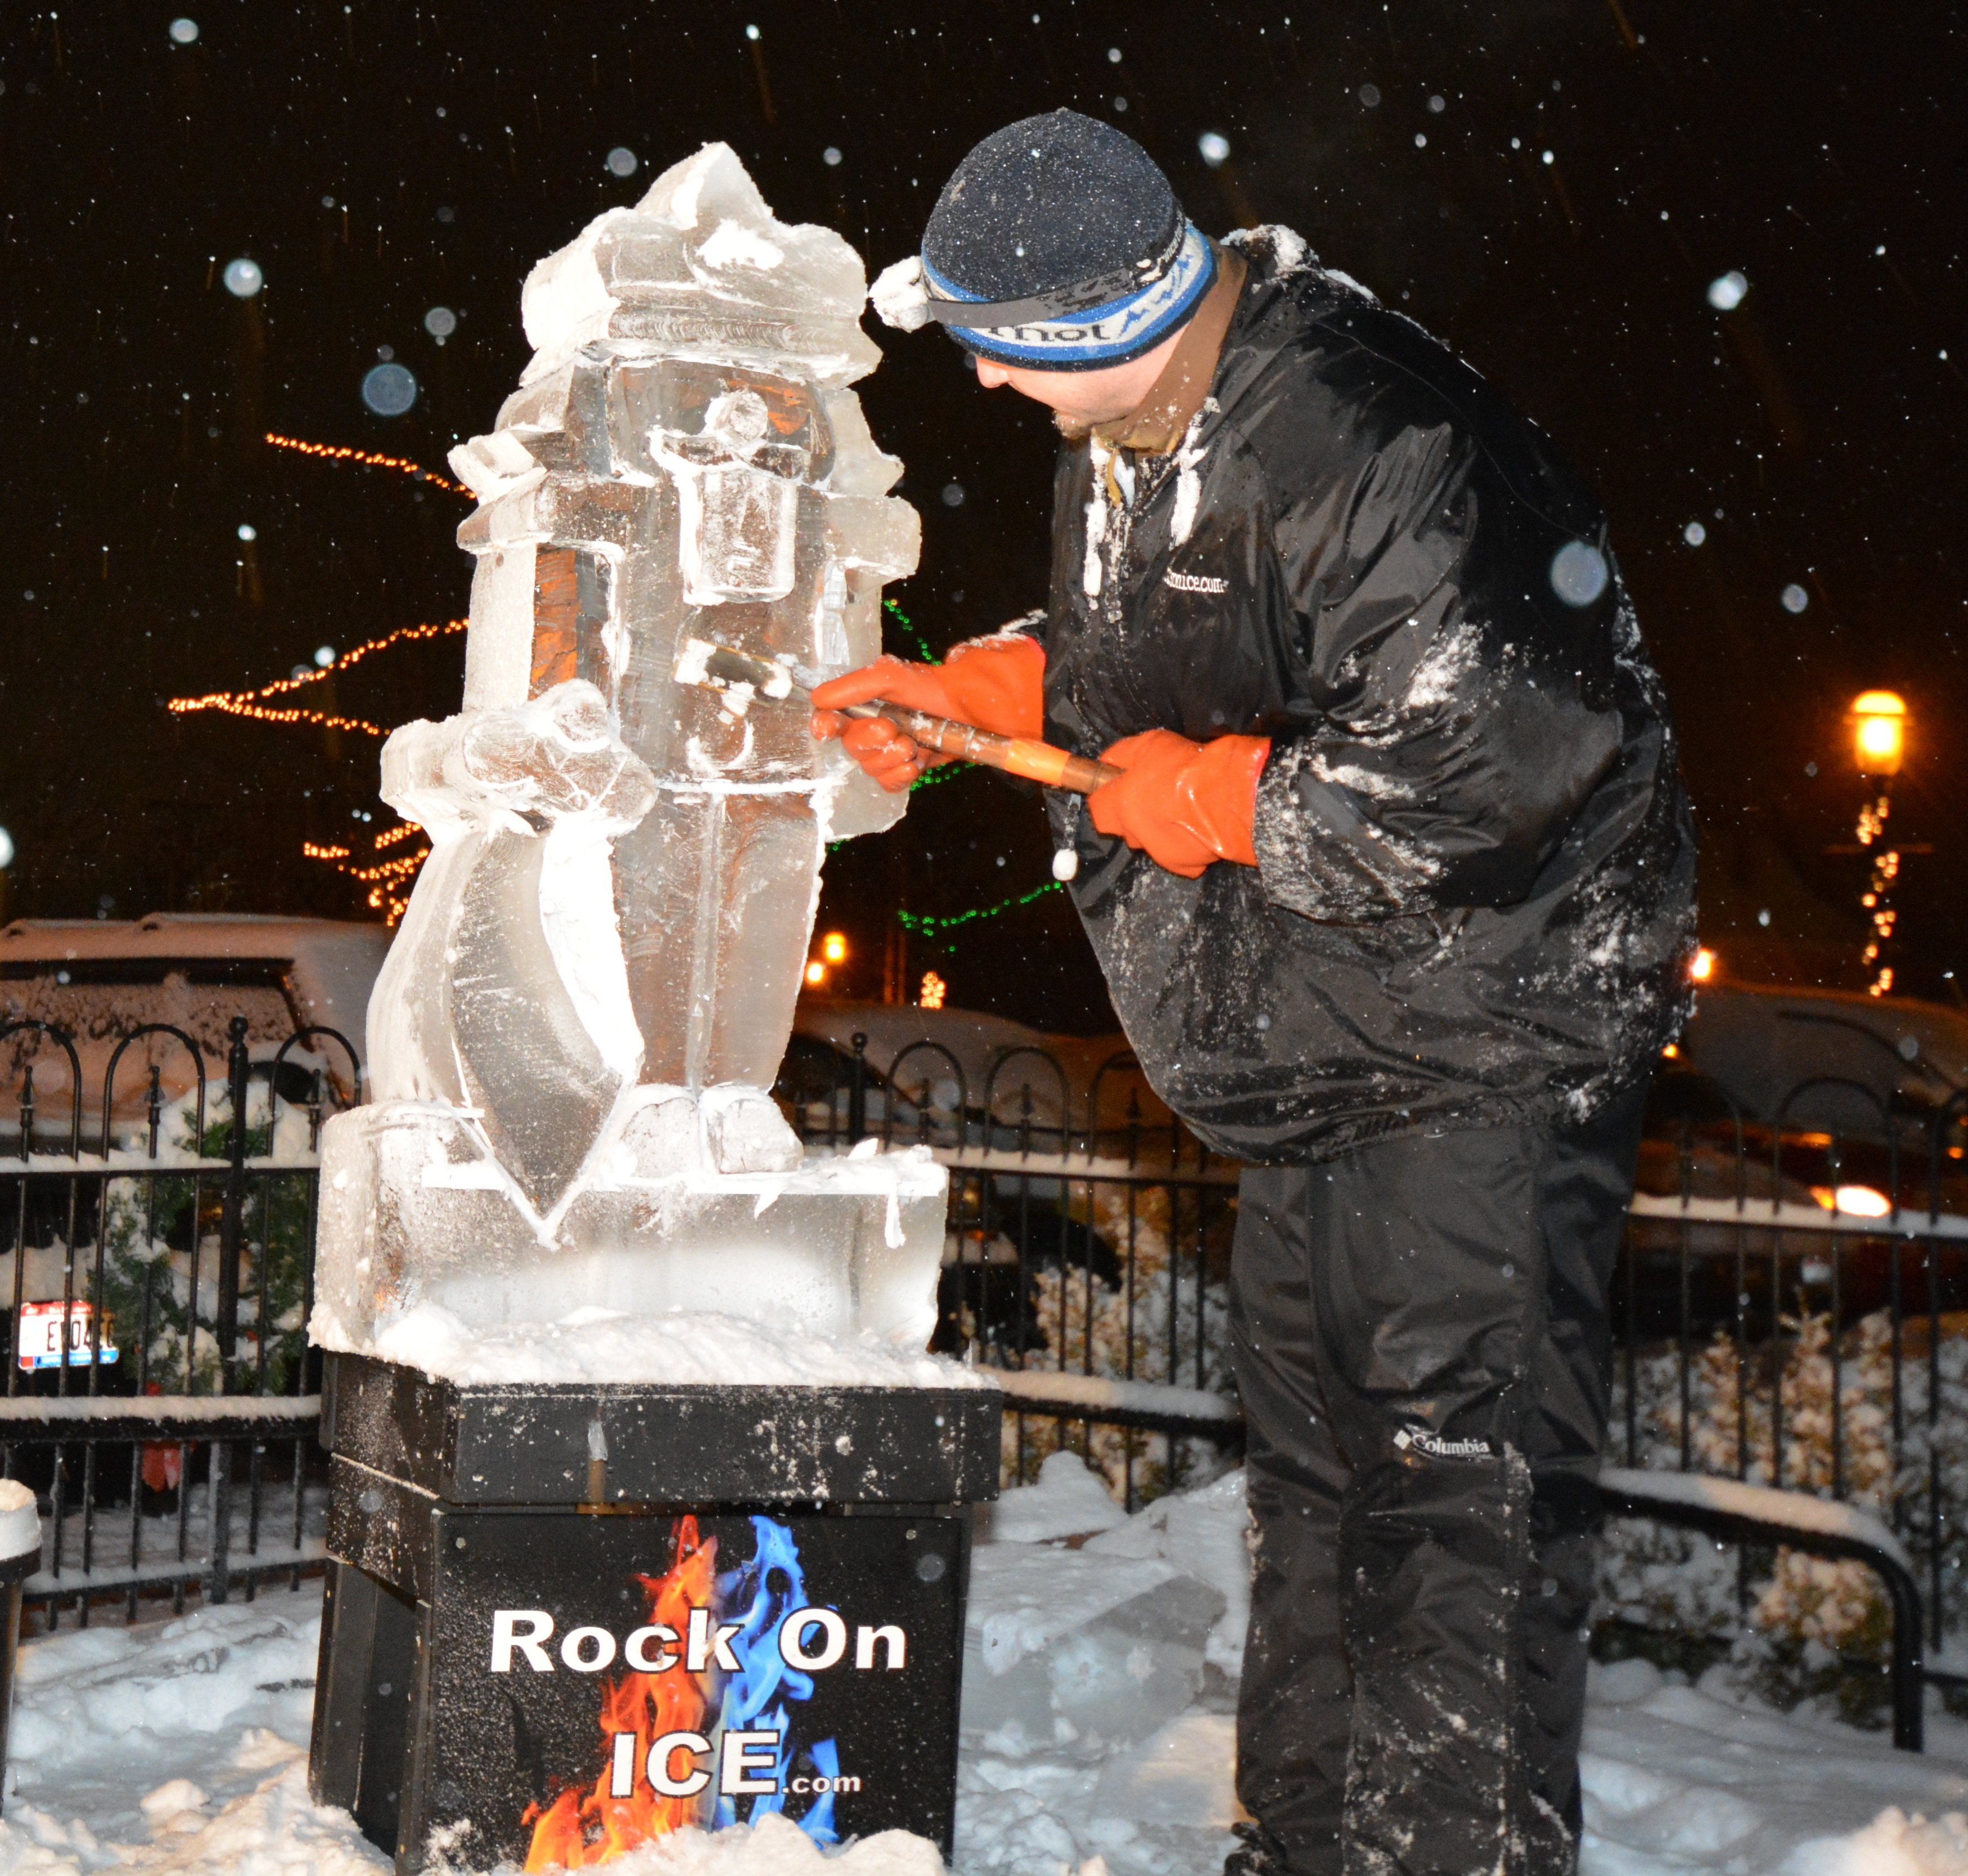 Man Carving Ice Sculpture